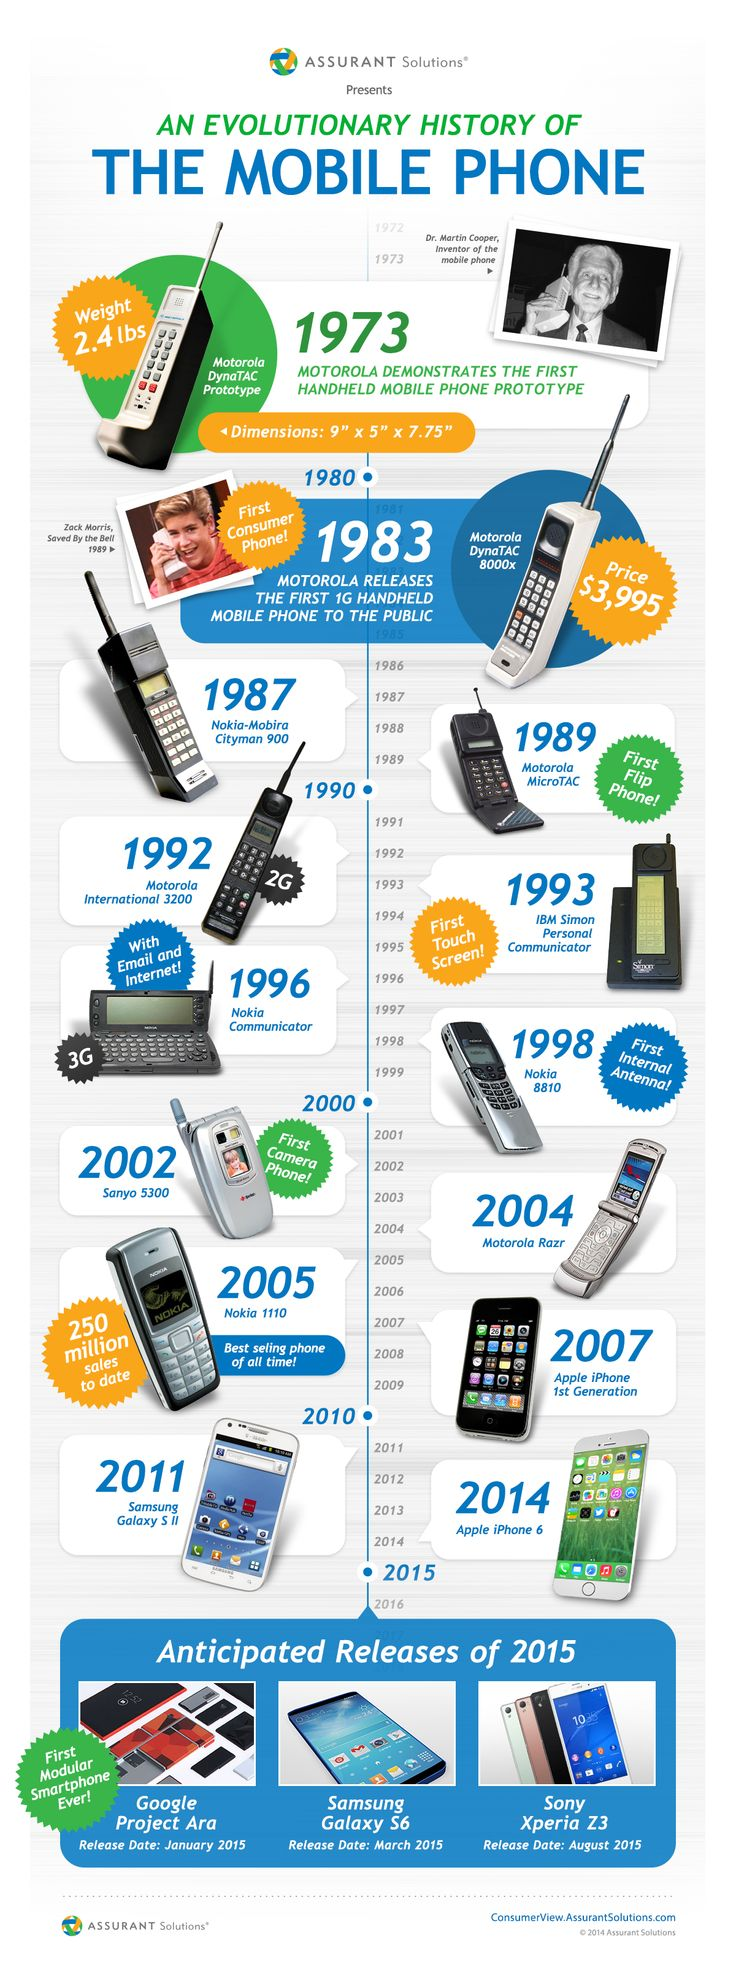 Evolution of the mobile phone throughout the past 30 years.